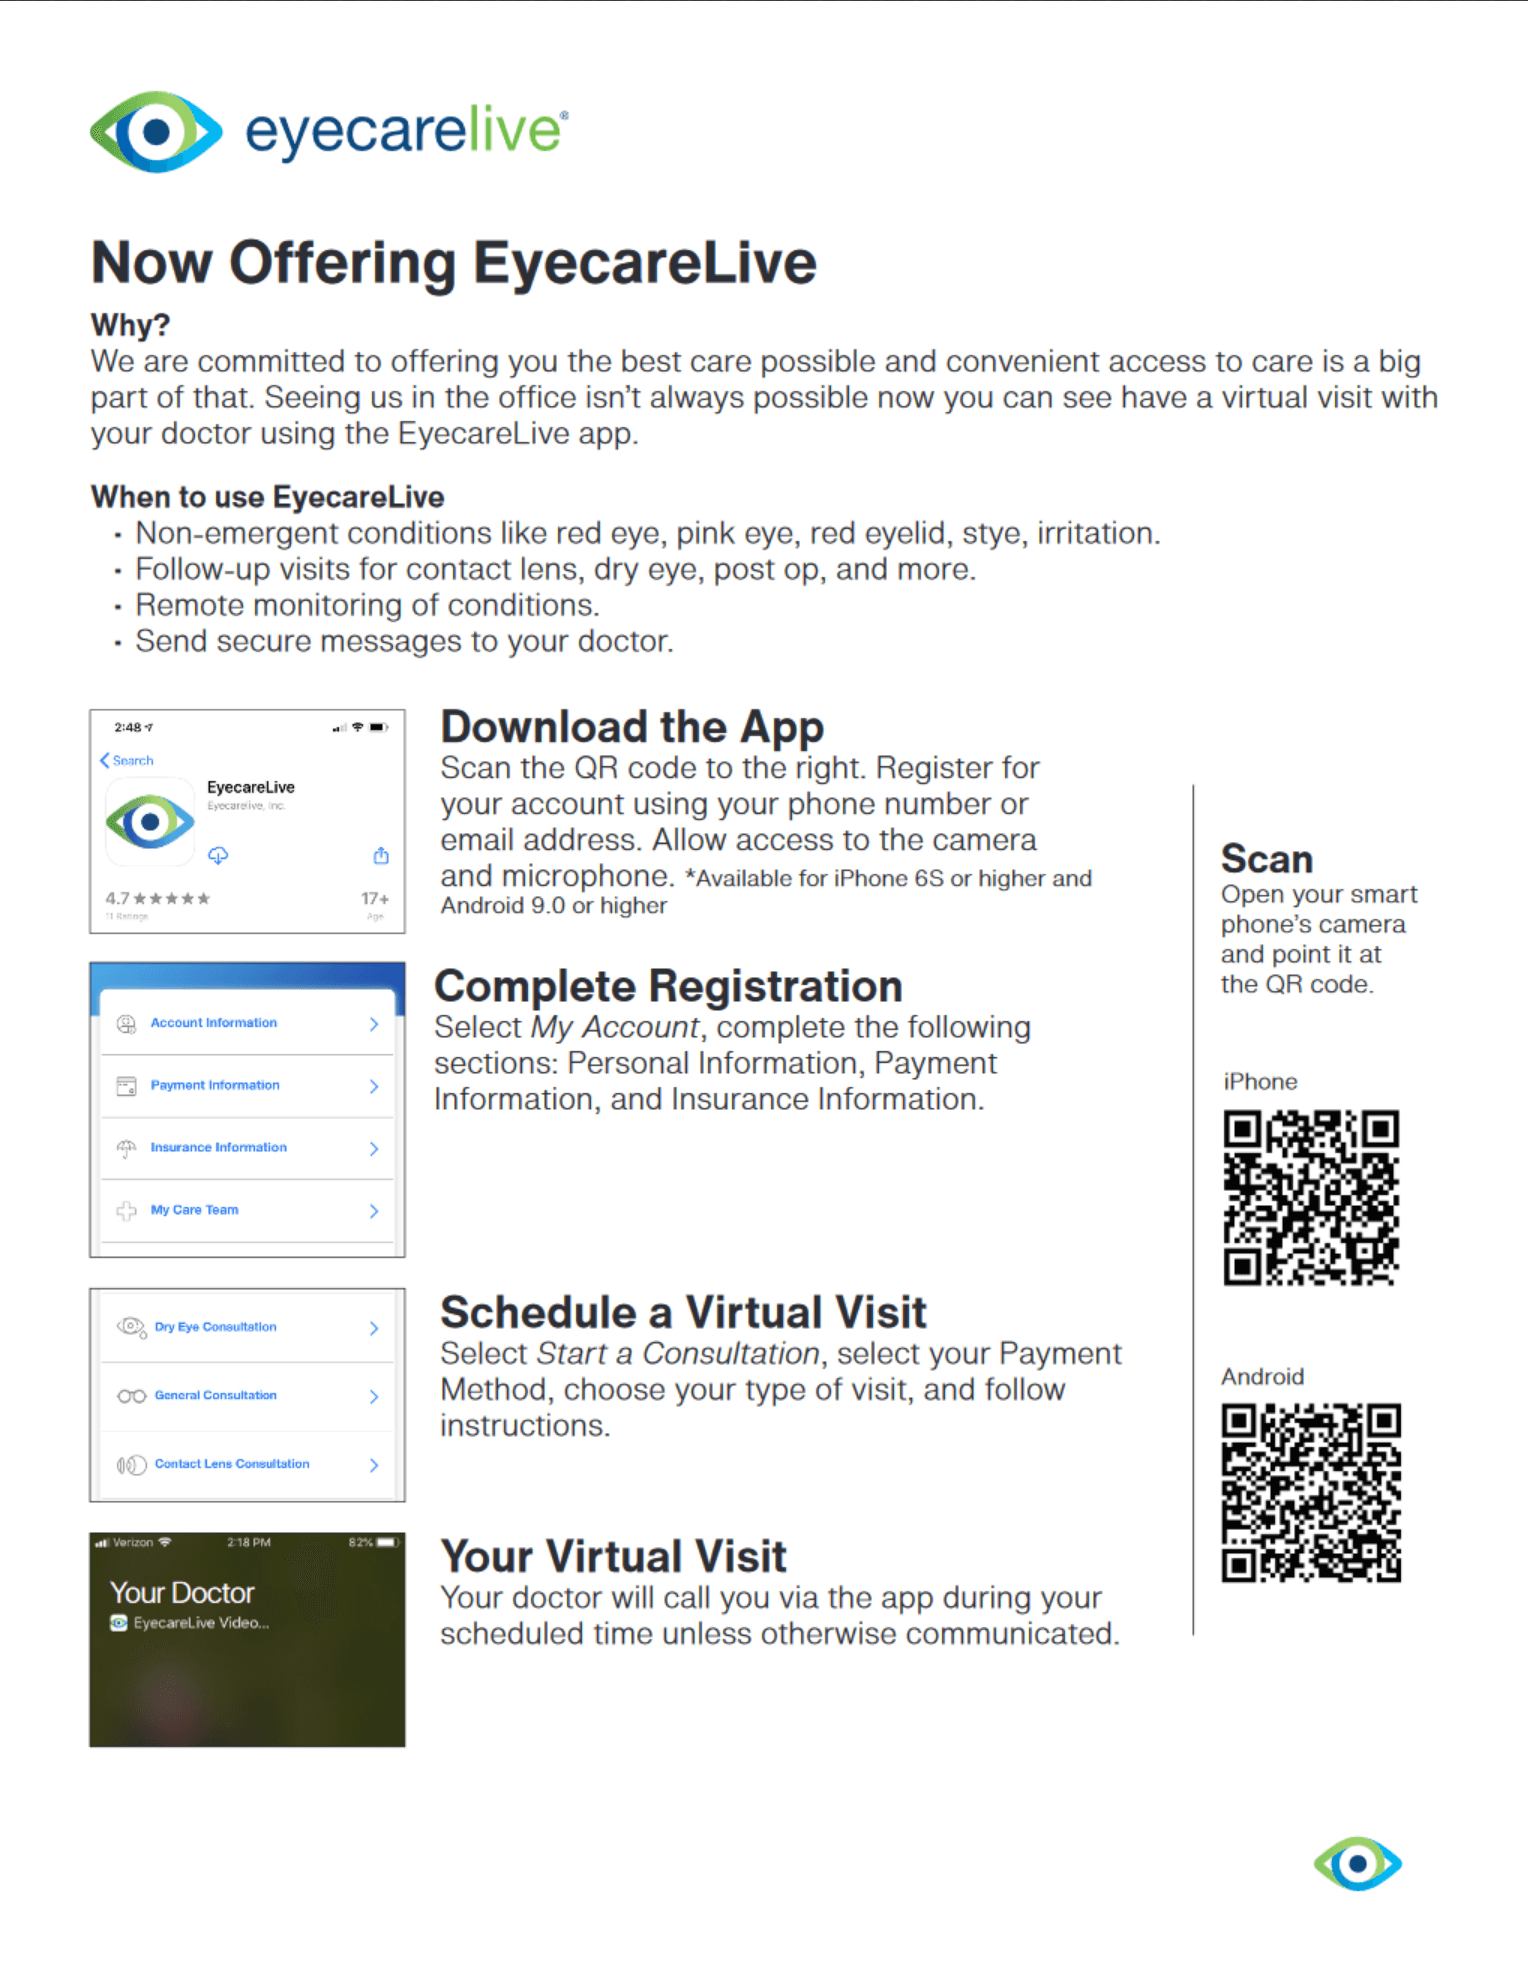 How to use eyecarelive